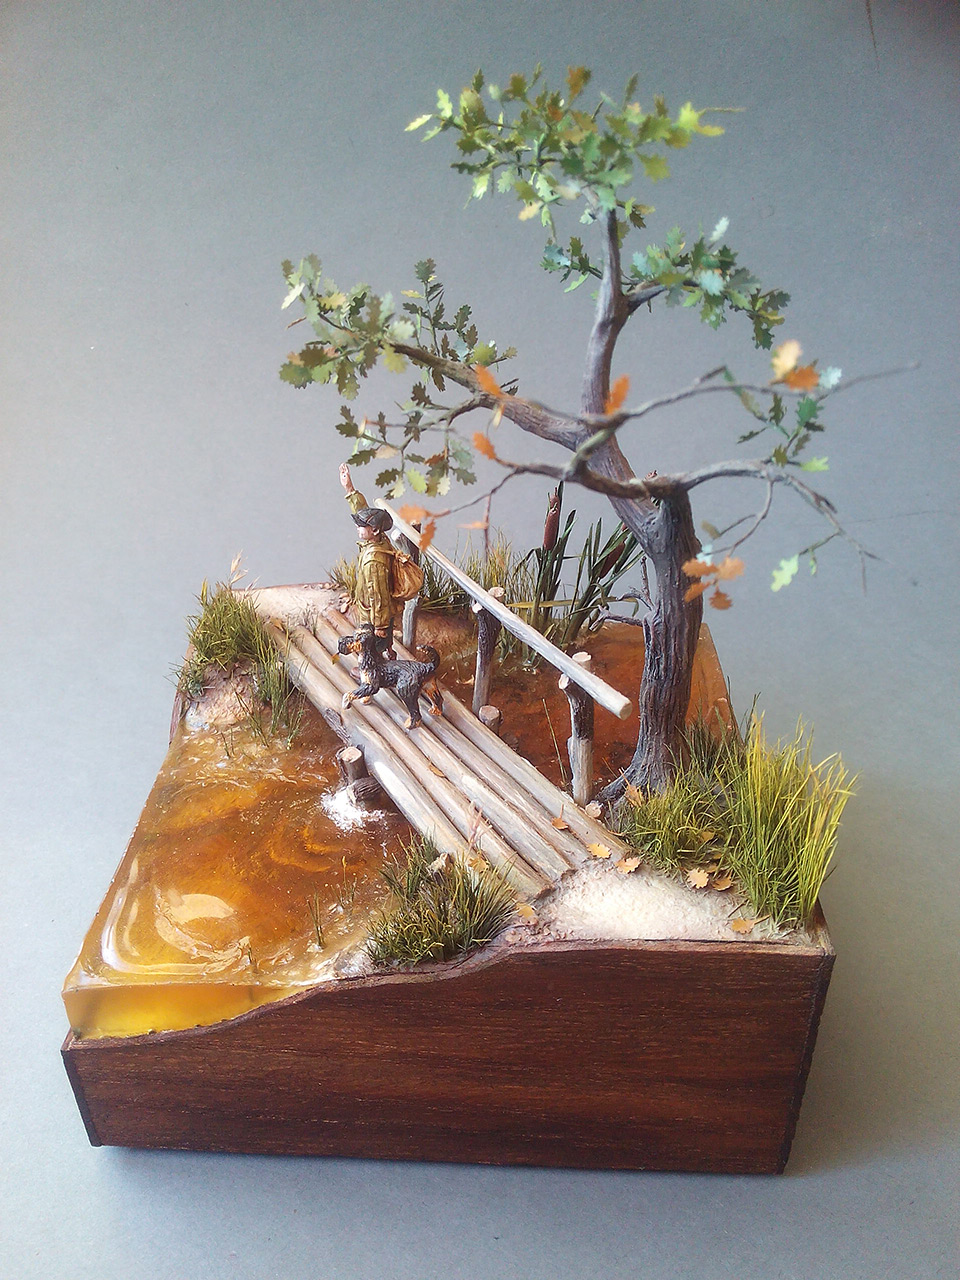 Dioramas and Vignettes: The Friends, photo #2